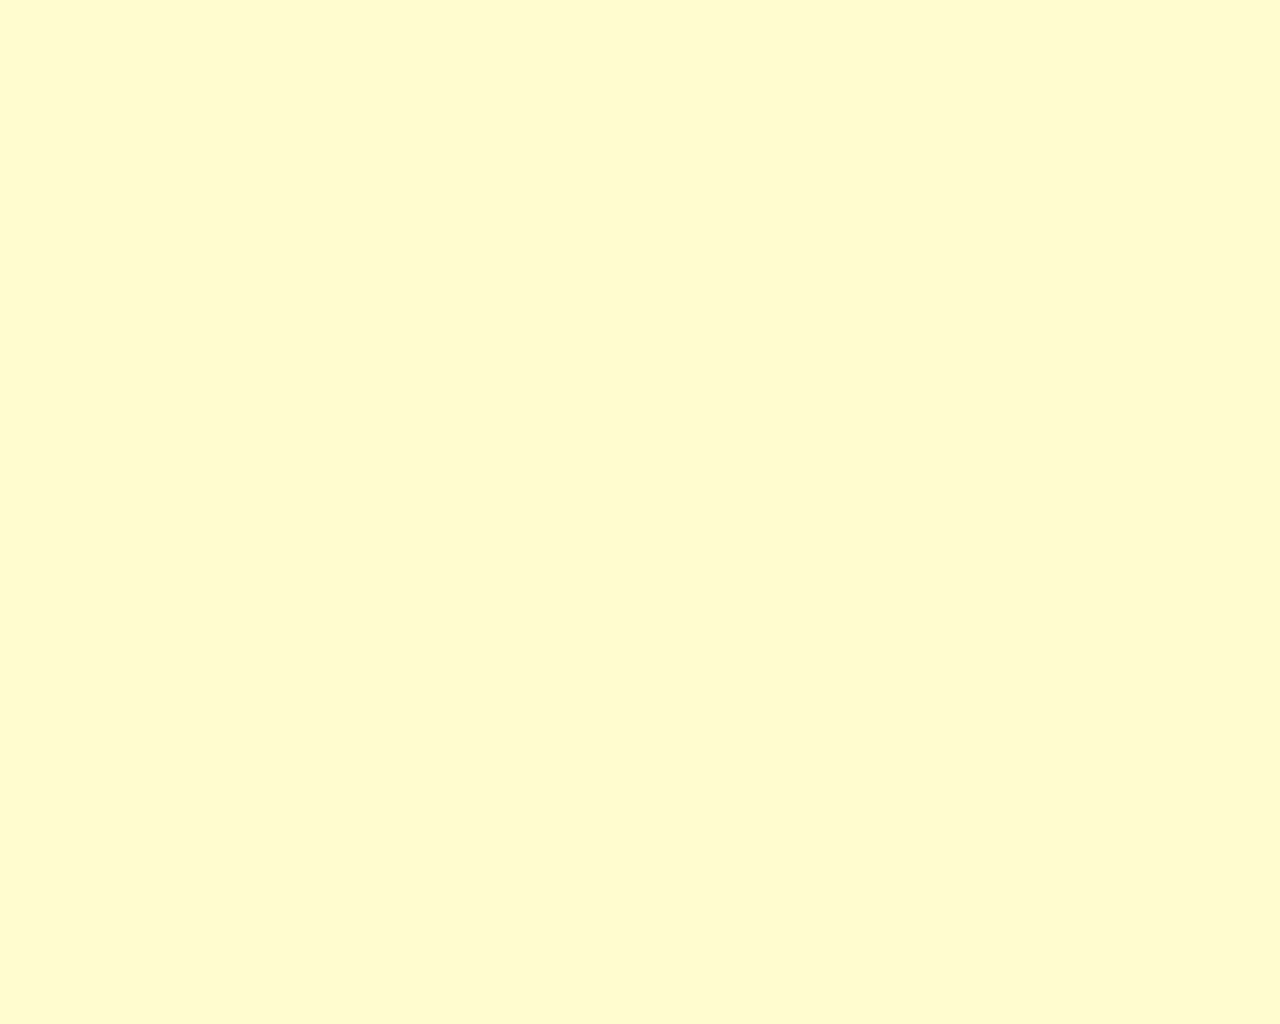 1280x1024 Cream Solid Color Background